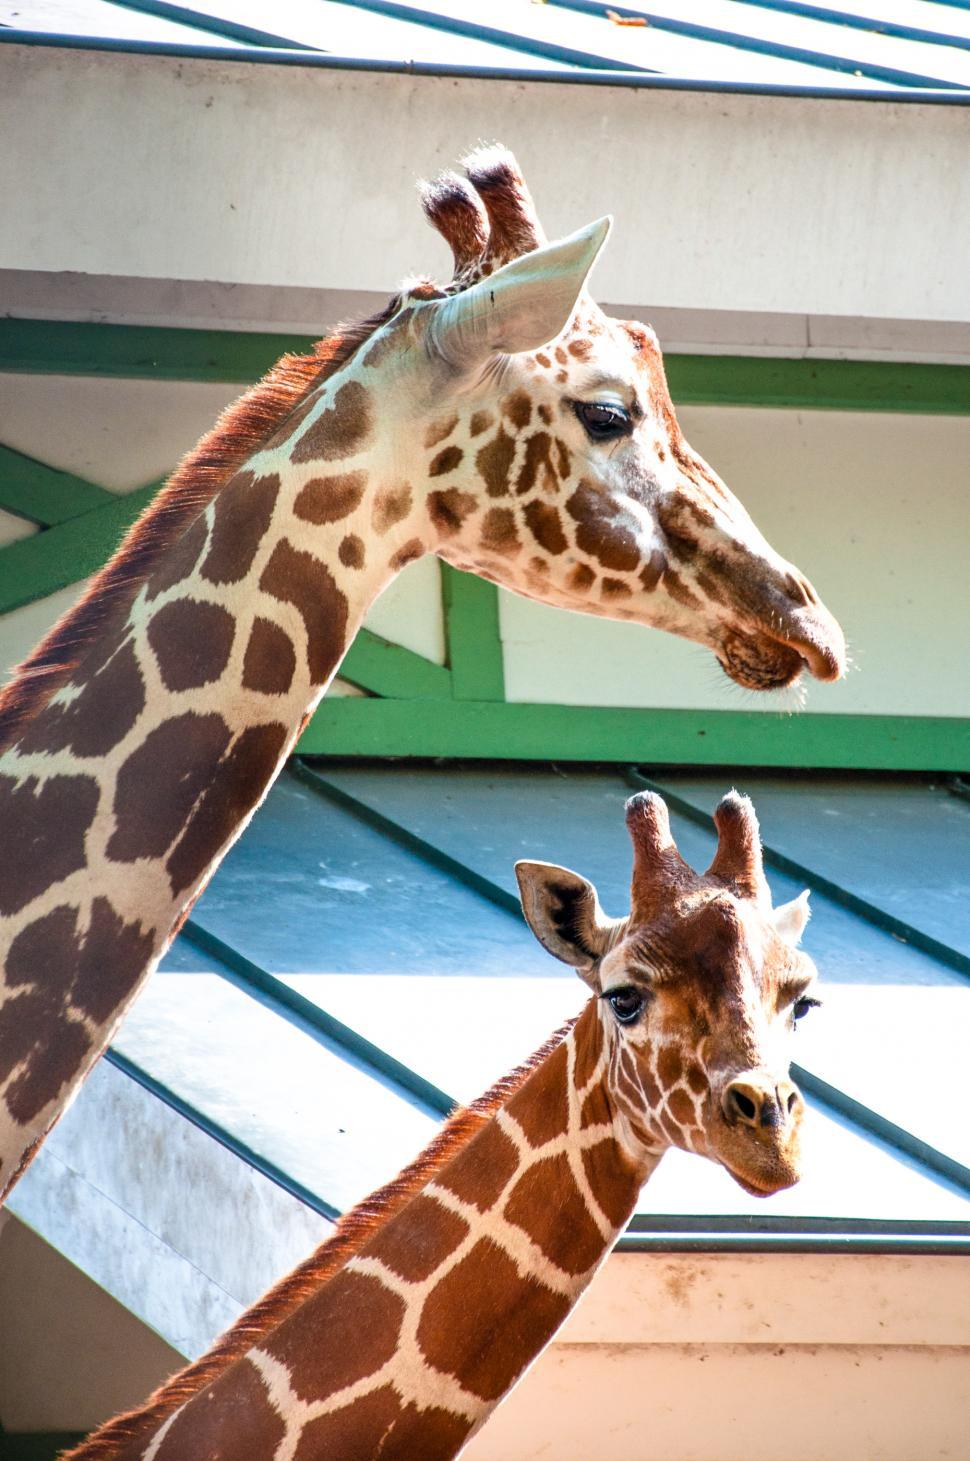 Download Free Stock Photo of Giraffes in the zoo